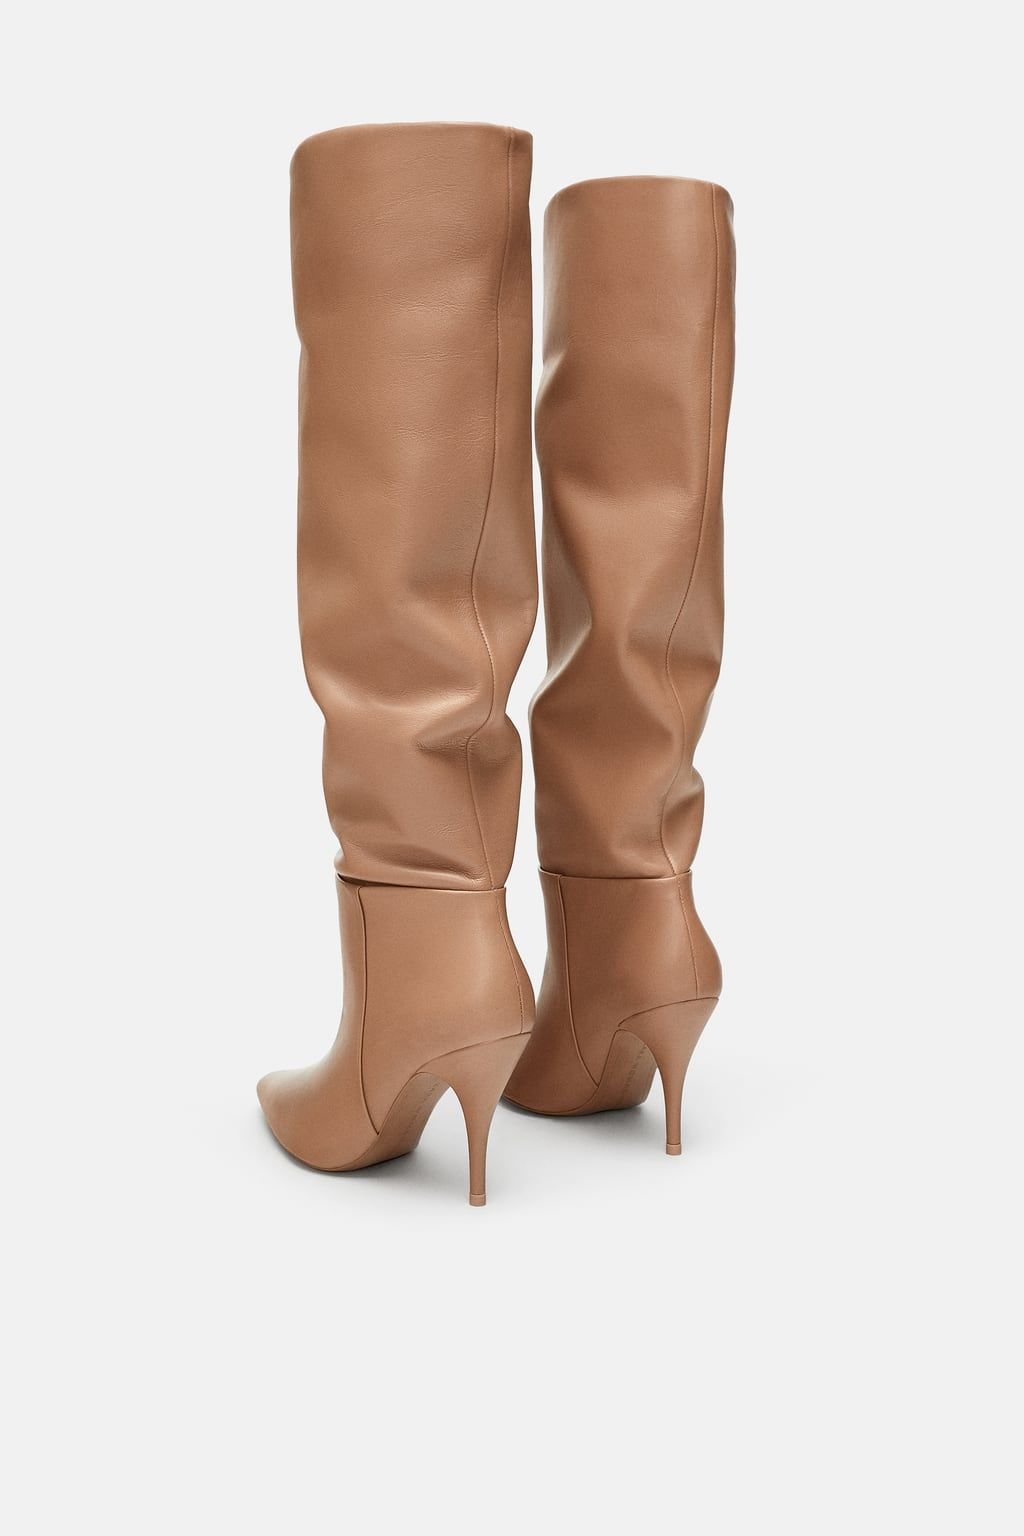 b7b359936d0 Image 5 of SOFT LEATHER HIGH HEELED BOOTS from Zara | Buty w 2019 ...